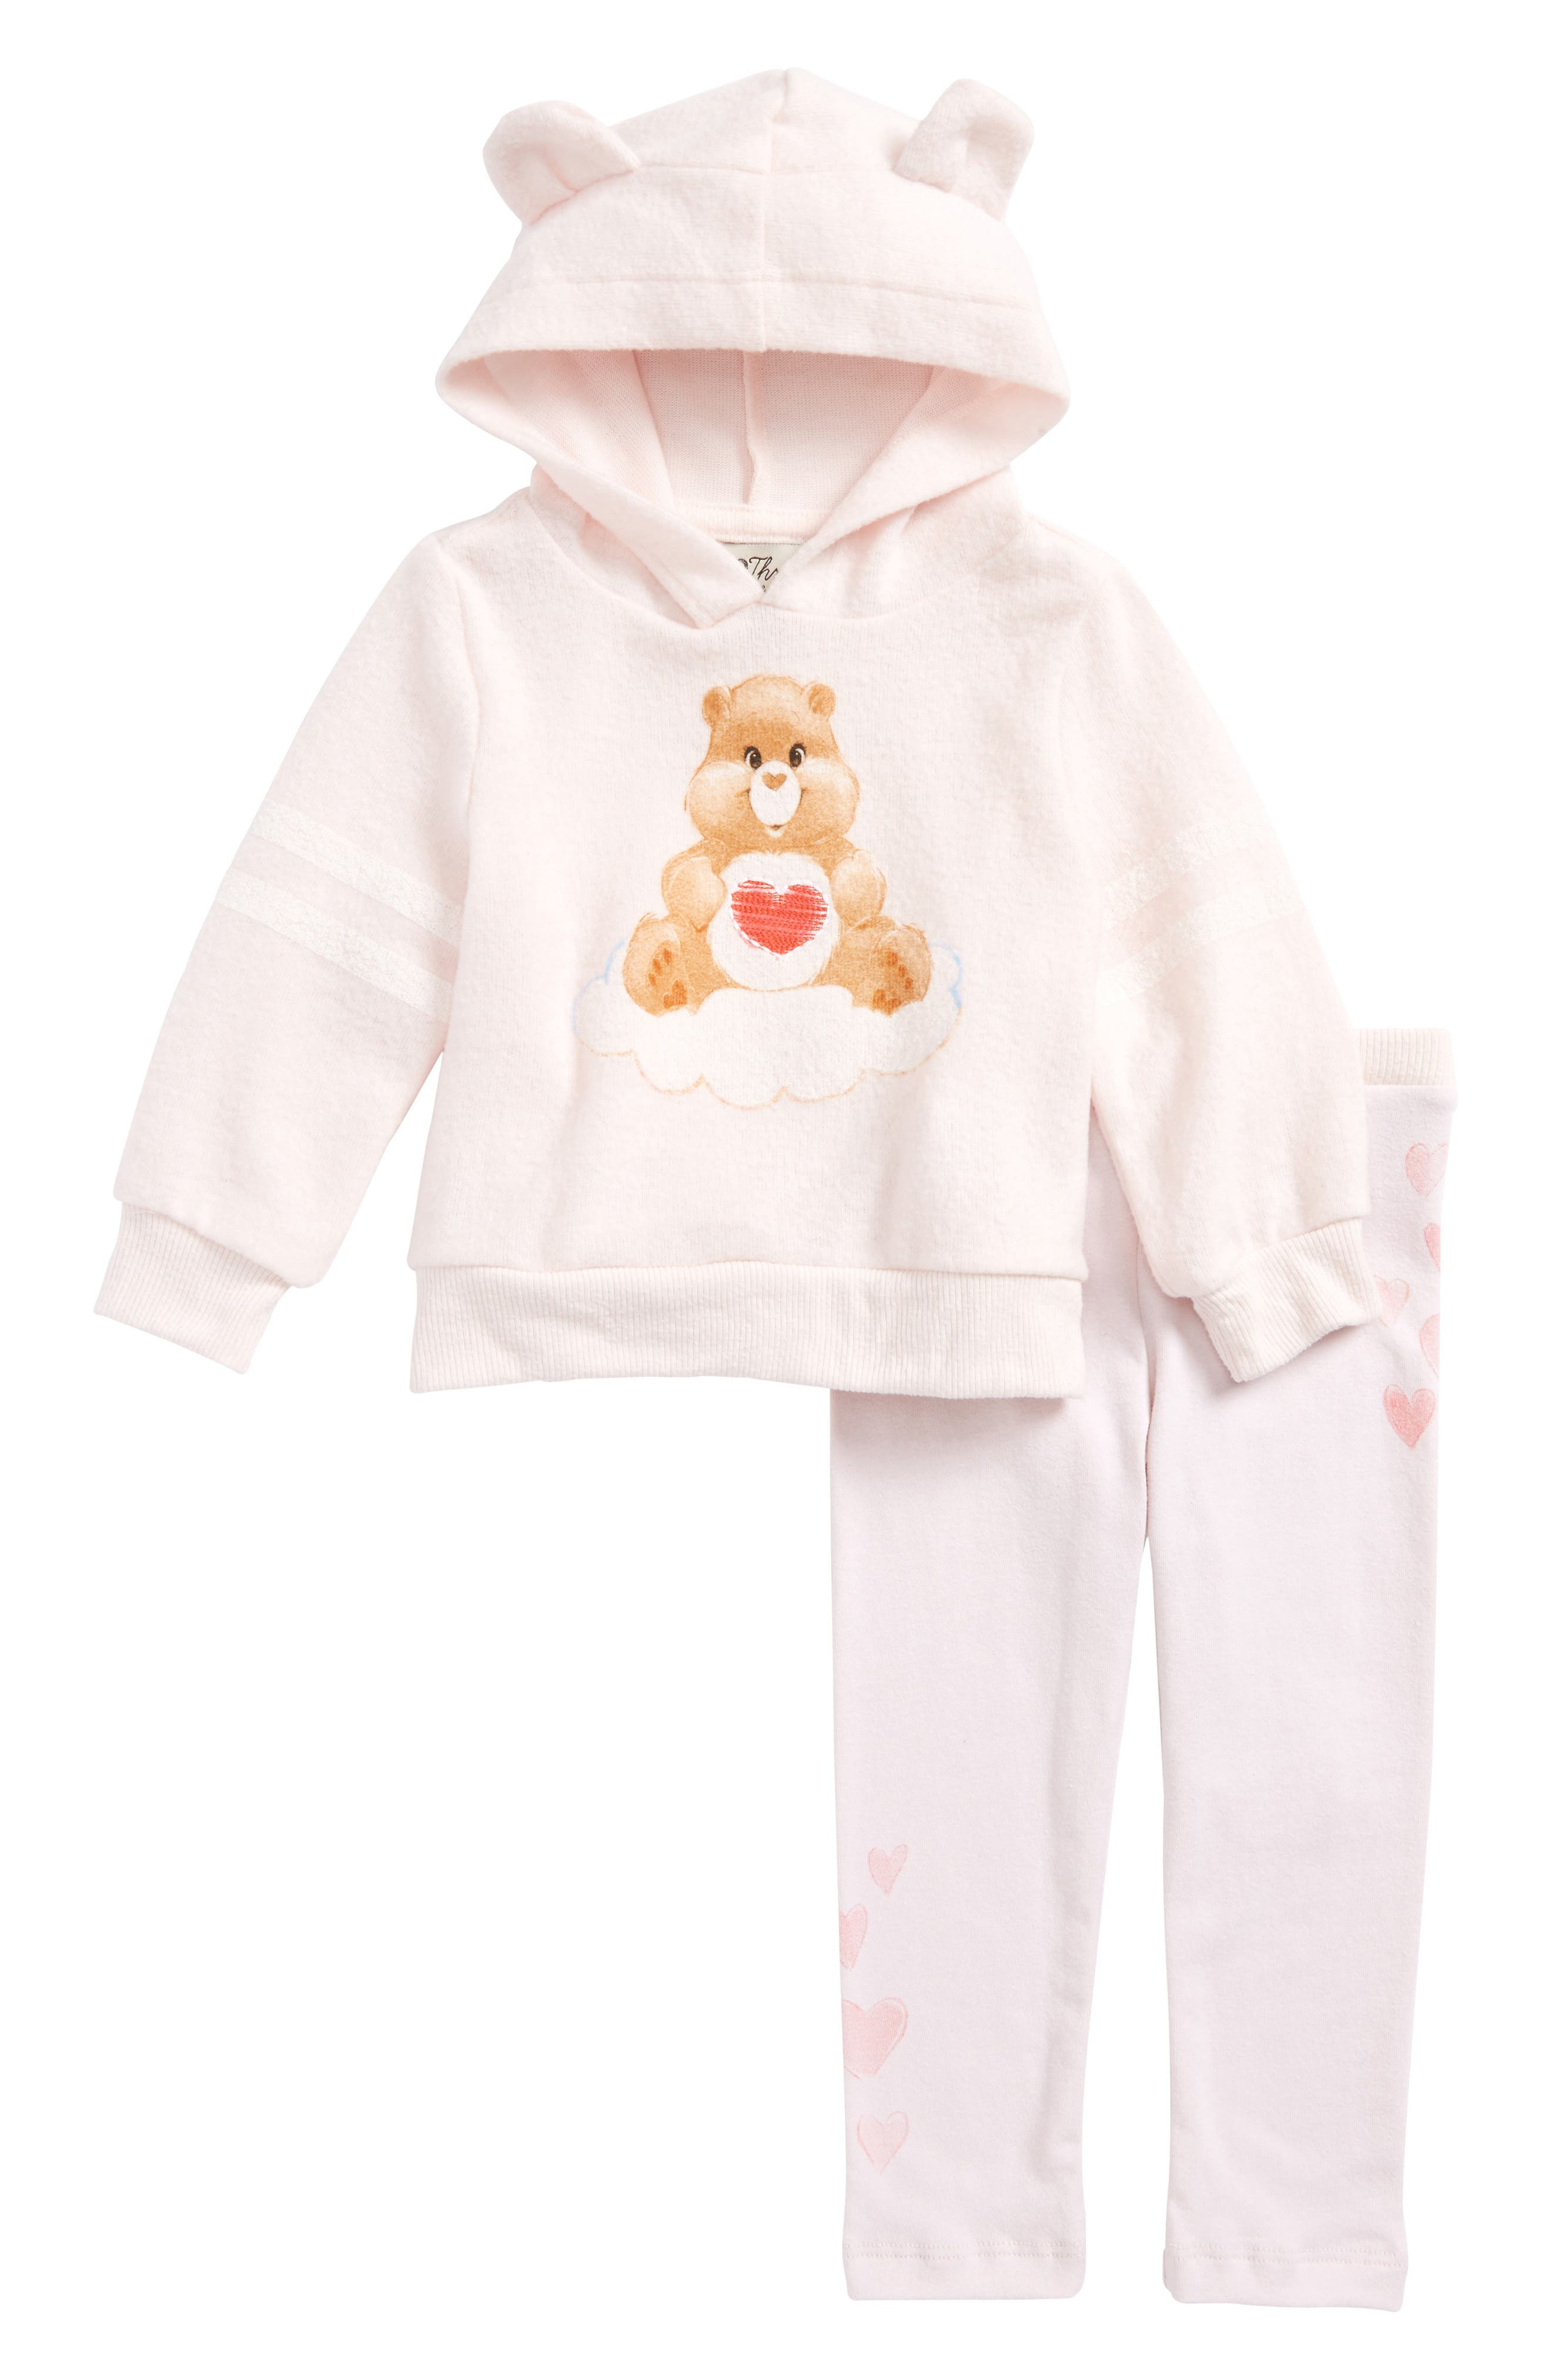 Alternate Image 1 Selected - Care Bears™ by Fine Threads Hoodie & Sweatpants Set (Toddler Girls & Little Girls)